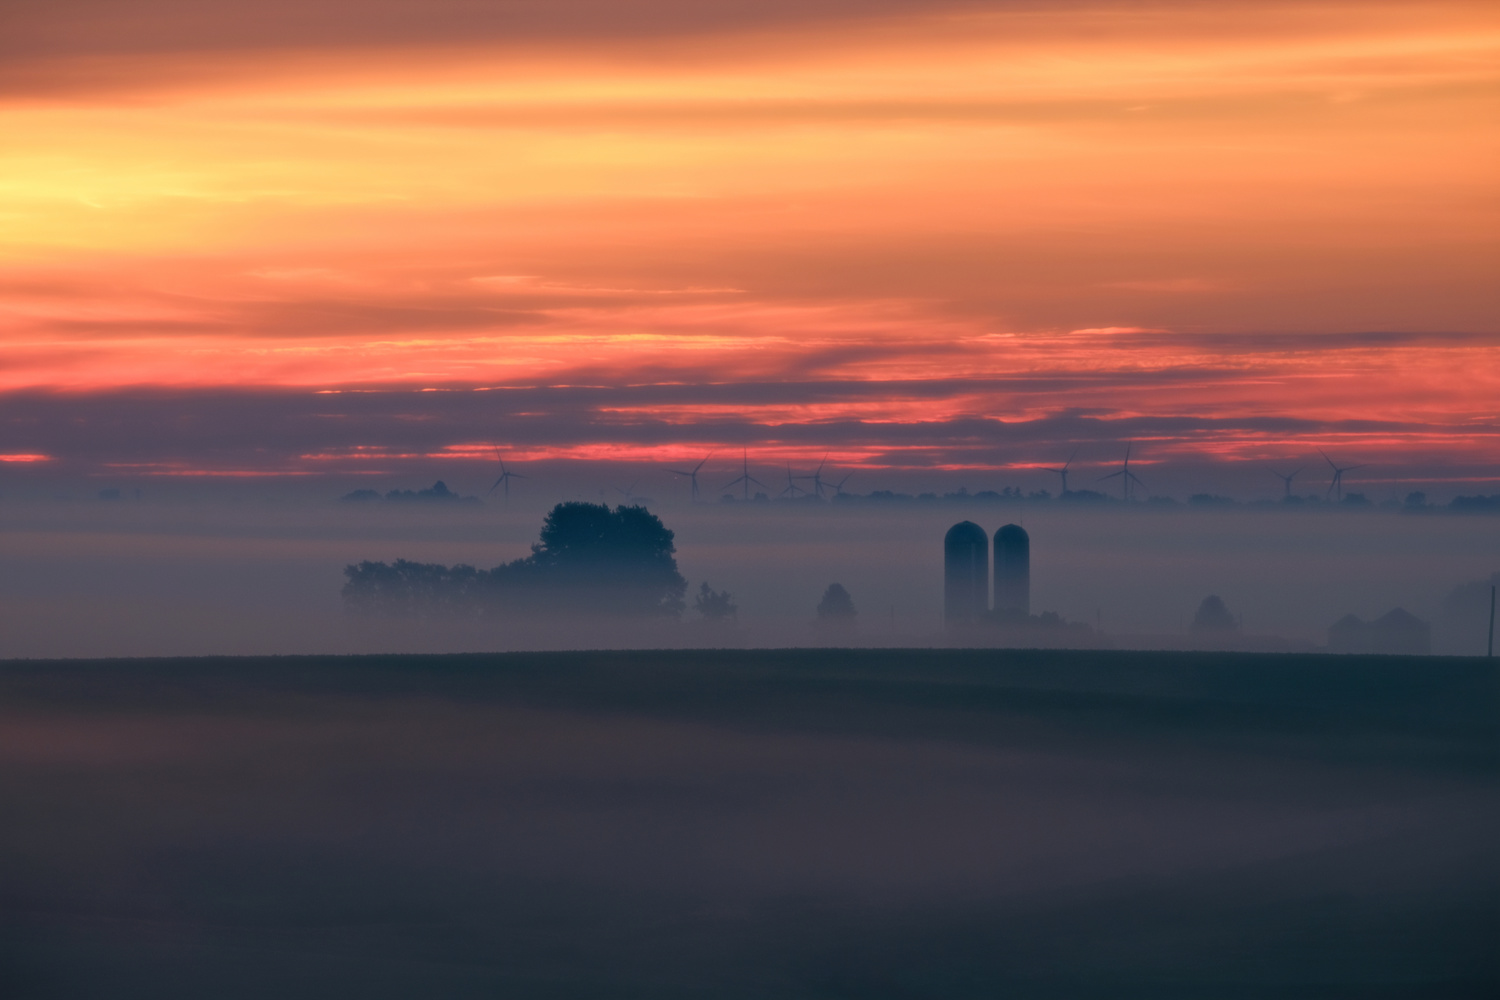 The day dawns by Will Hoyer